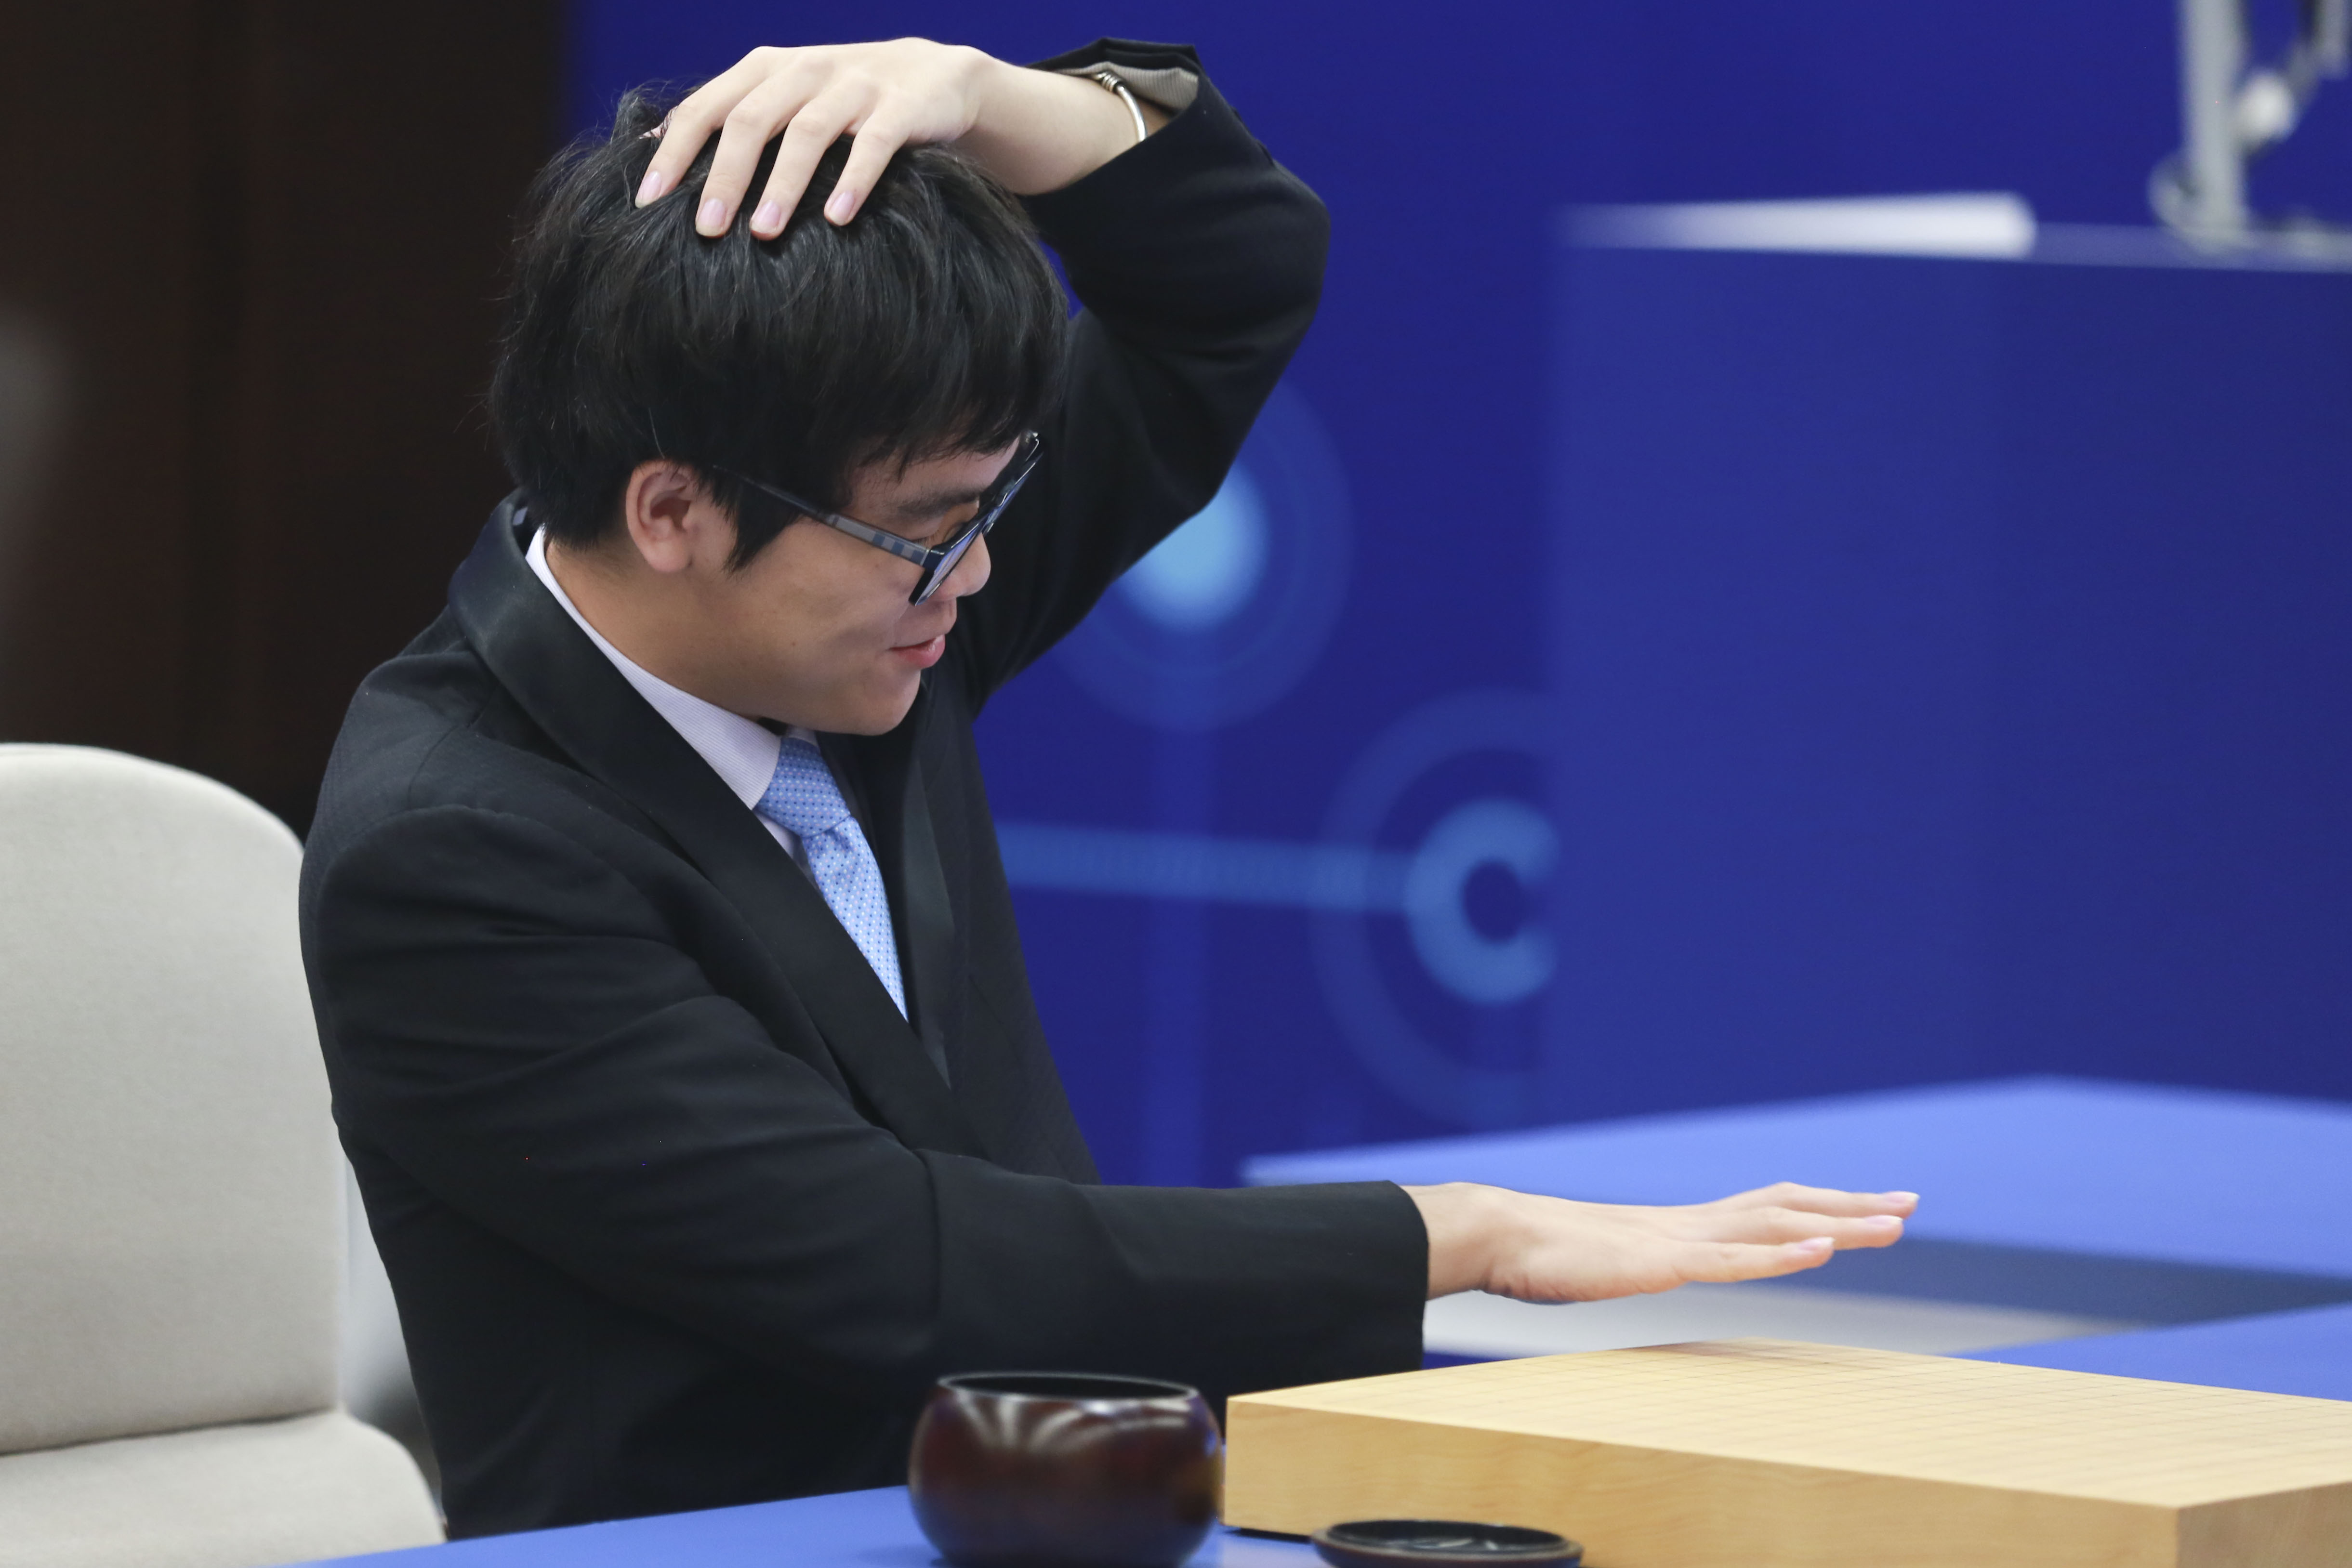 Ke Jie reacts during go game against Google's AlphaGo.